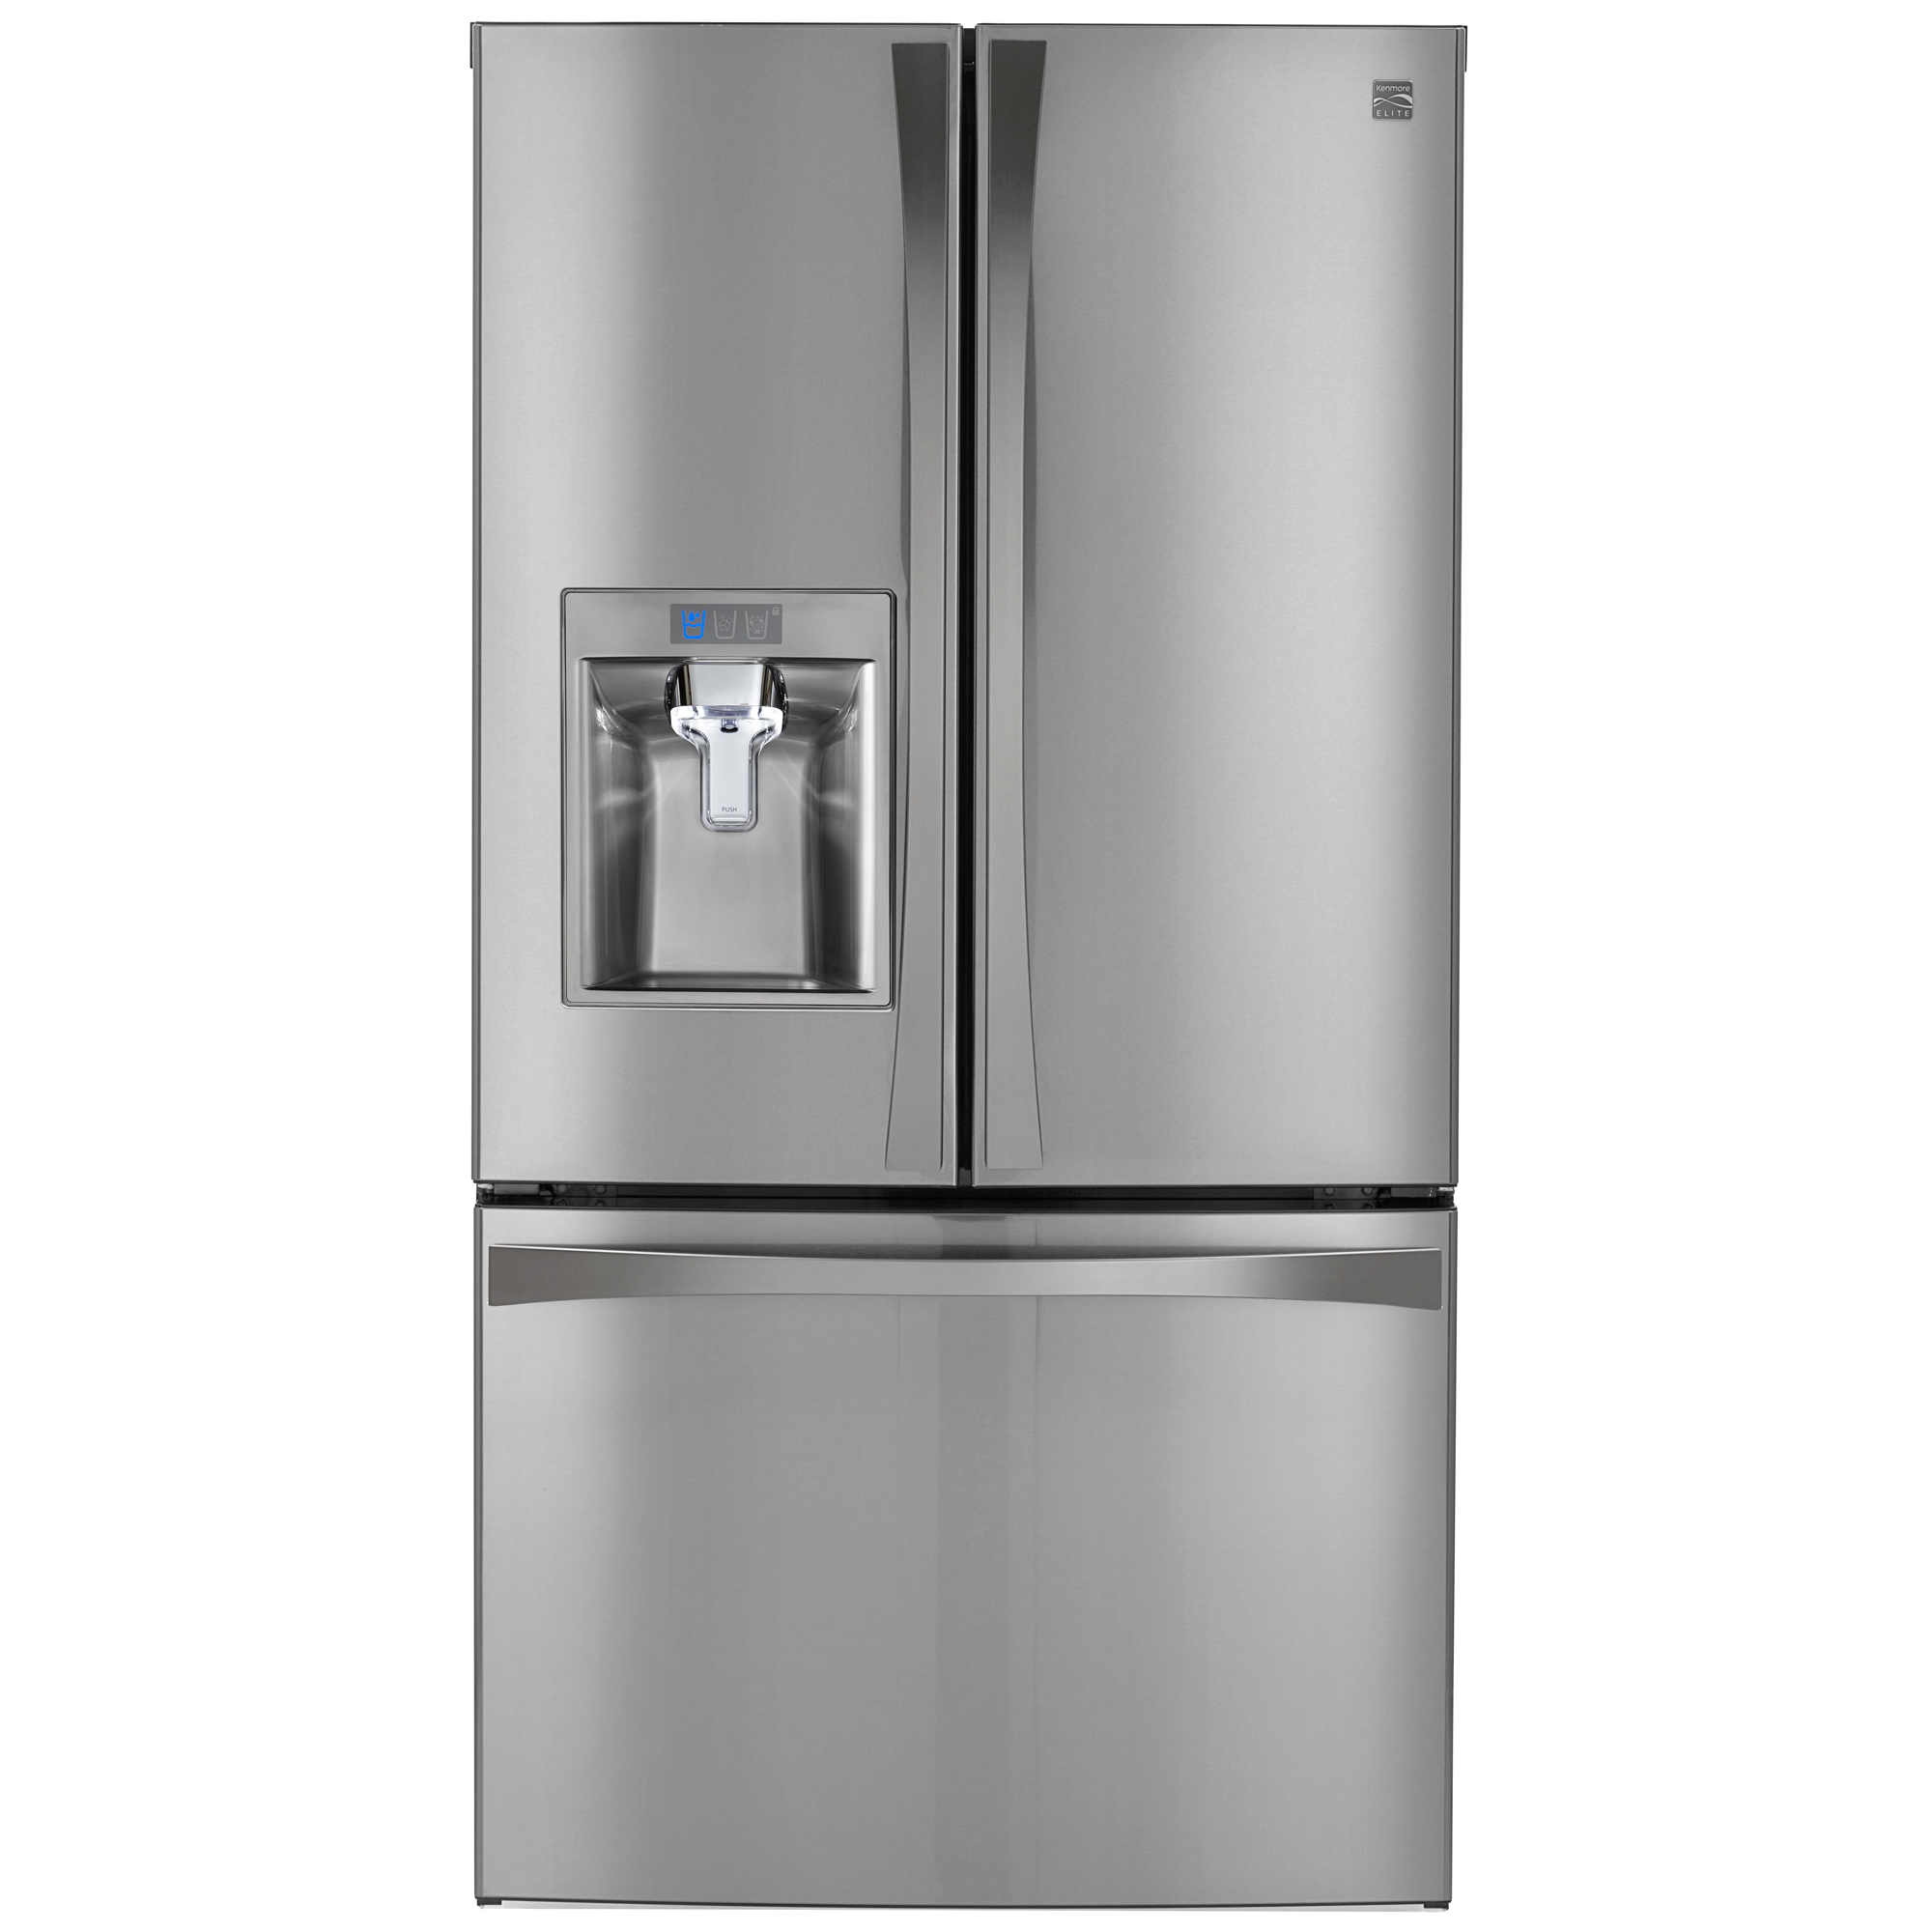 73153-28-7-cu-ft-French-Door-Bottom-Freezer-Refrigerator-%E2%80%93-Stainless-Steel